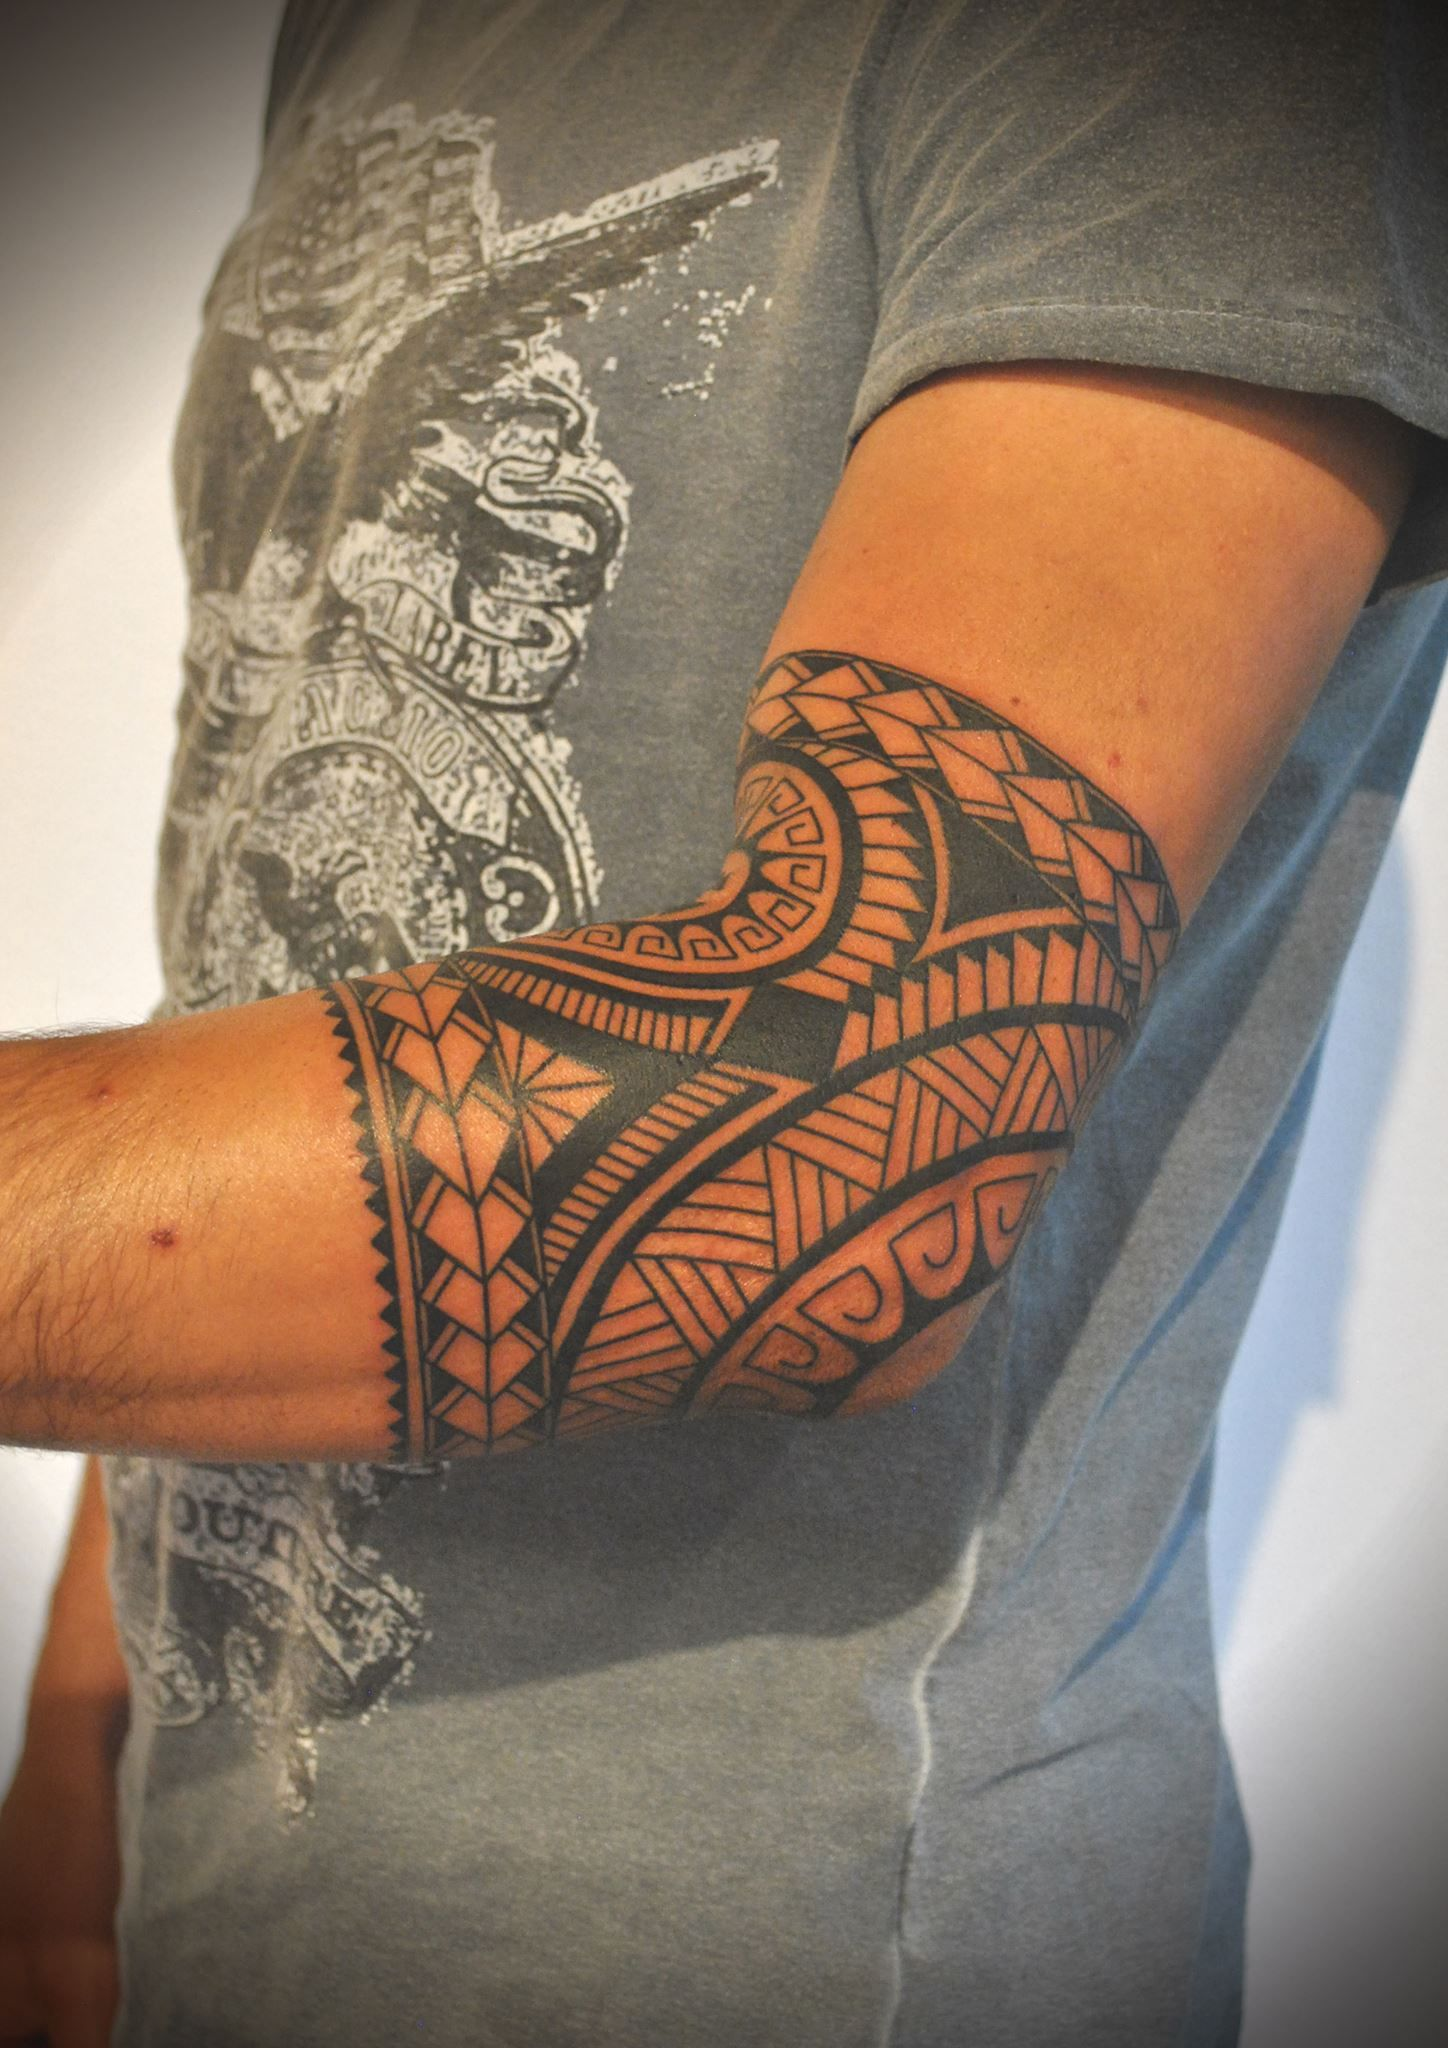 Preferência polynesian inspired tattoo | Simon Tattoo | Tattoo Studio in  LV29